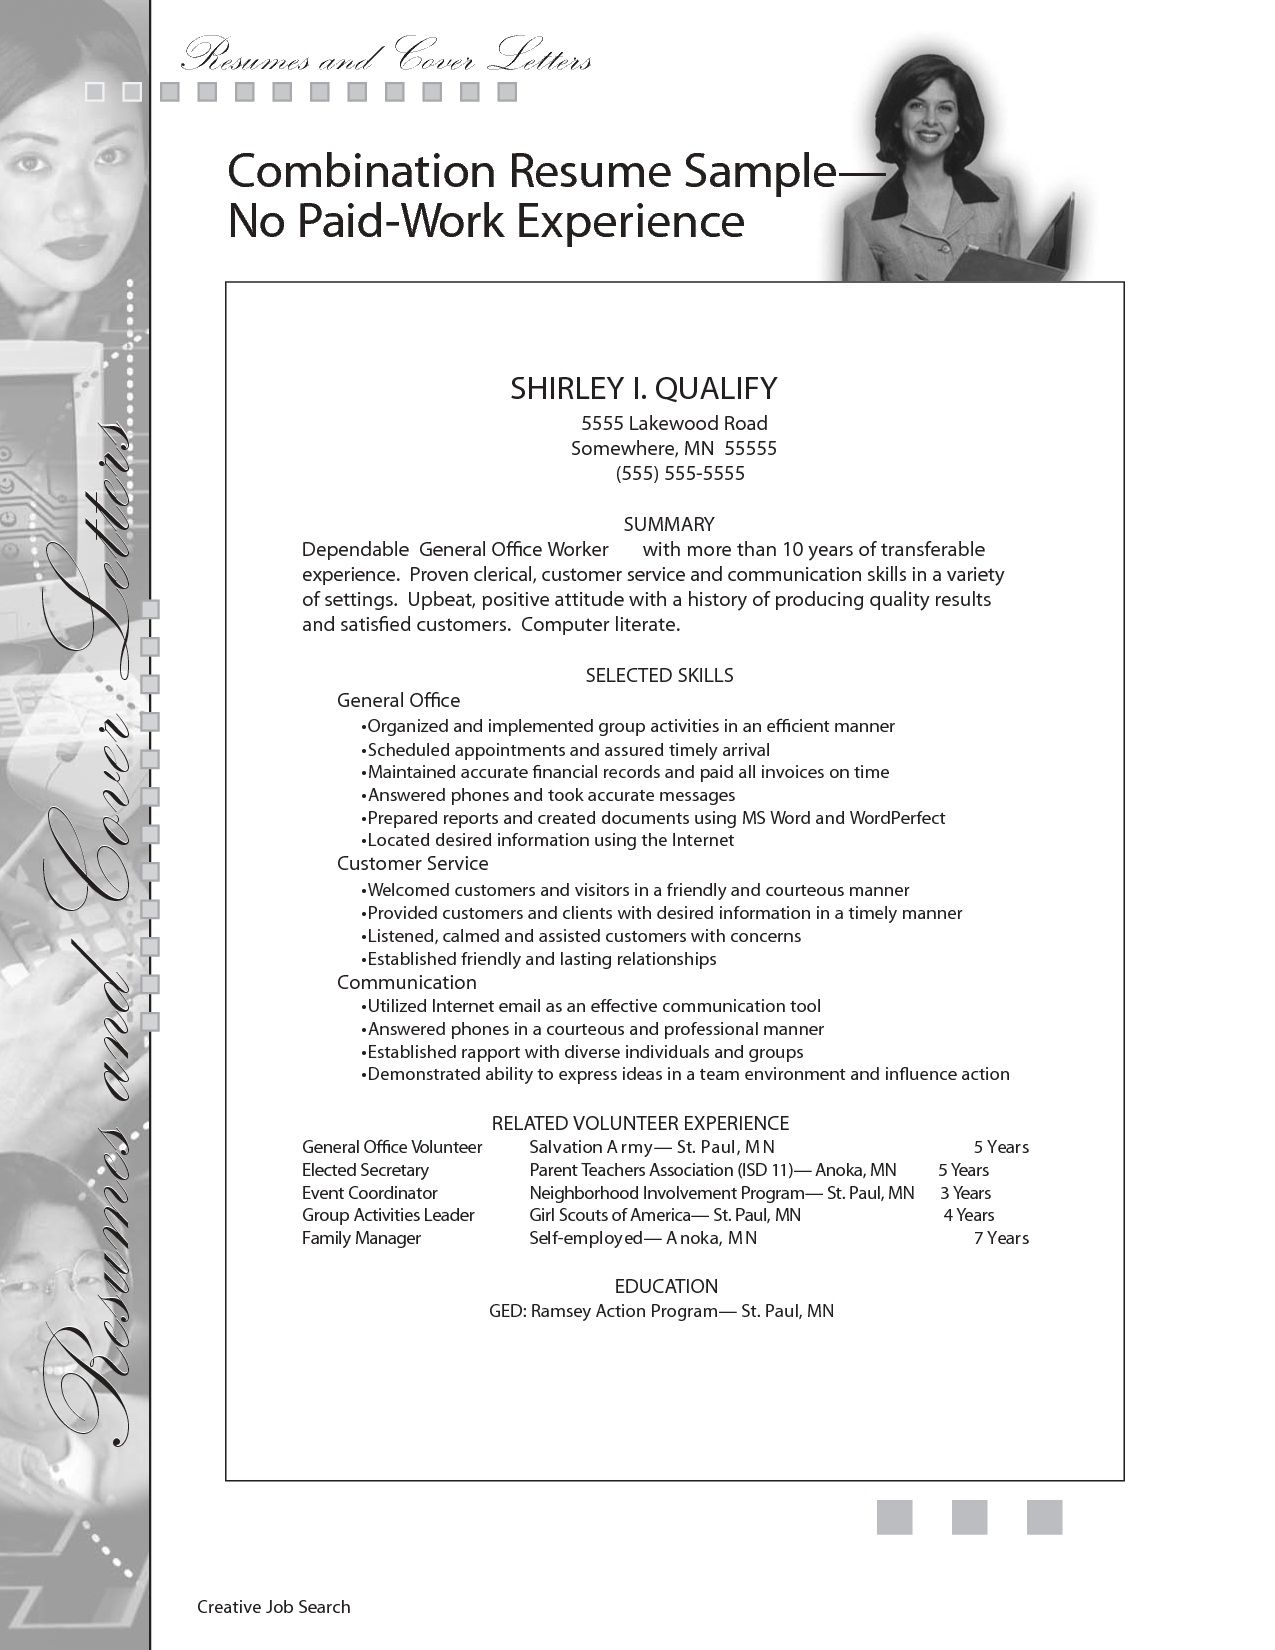 resume for homemaker no work experience job search write a job resume no work experience jobresumesample com